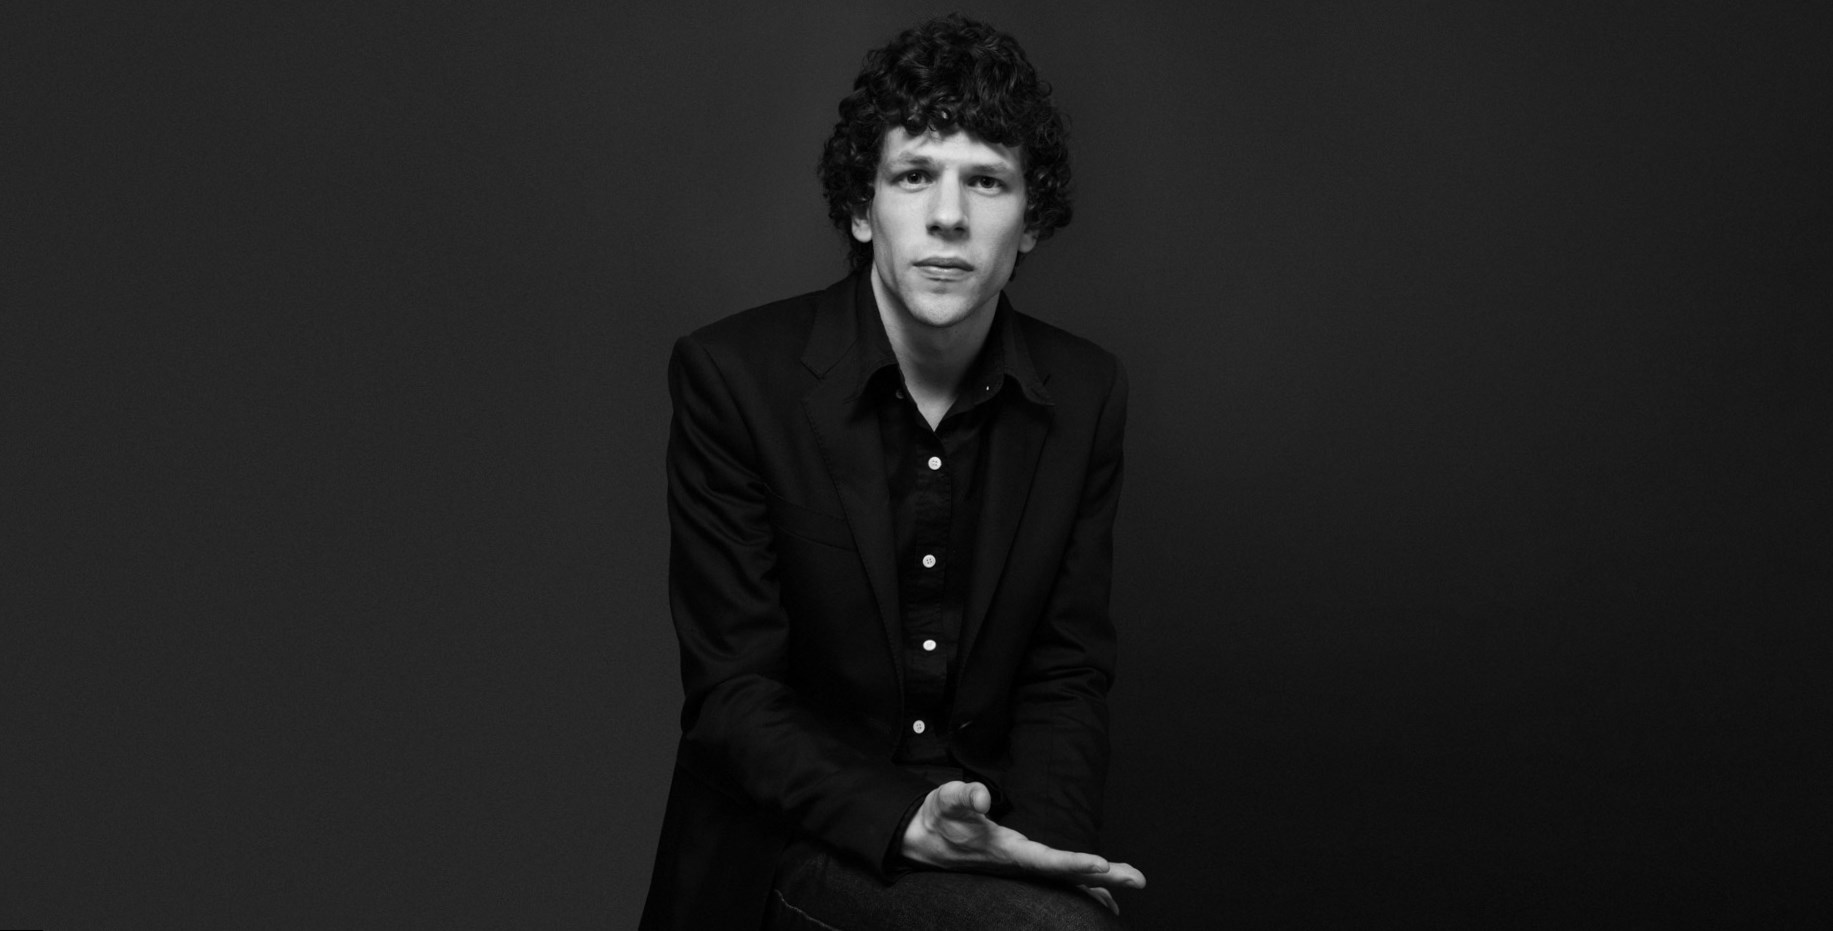 Jesse Eisenberg Best Movies and TV Shows